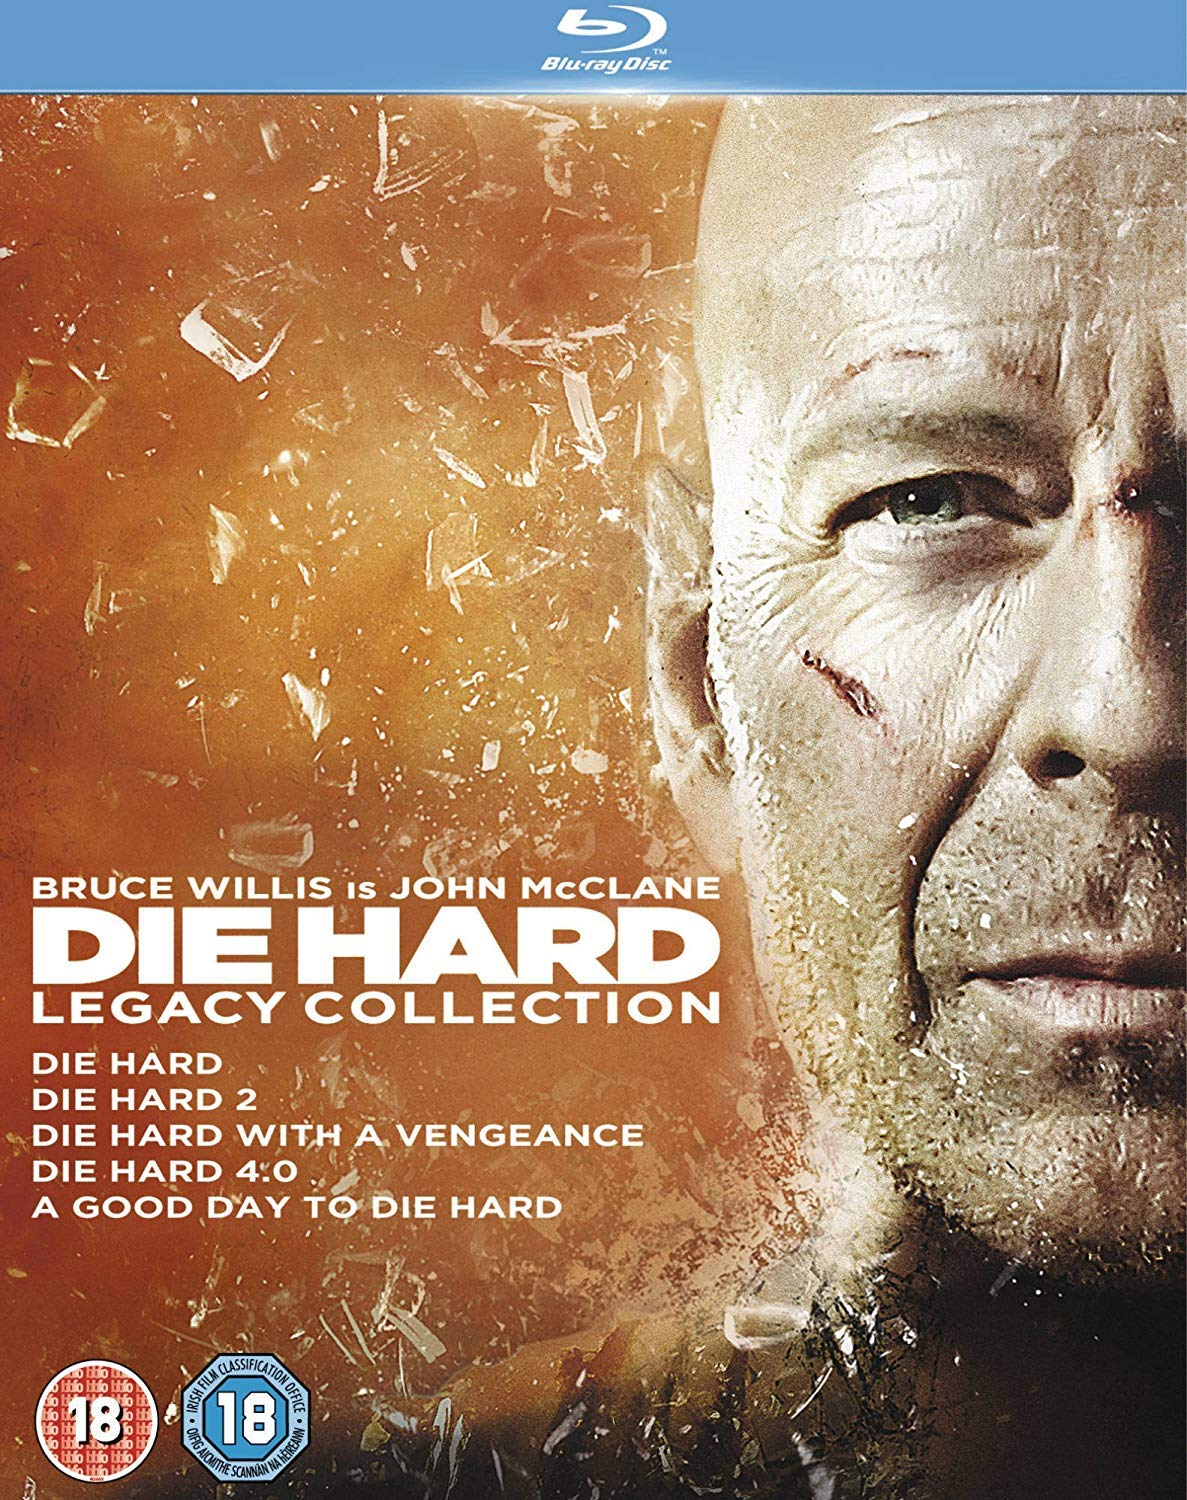 Die Hard: Legacy Collection (Films 1-5) [Edizione: Regno Unito] [Reino Unido] [Blu-ray]